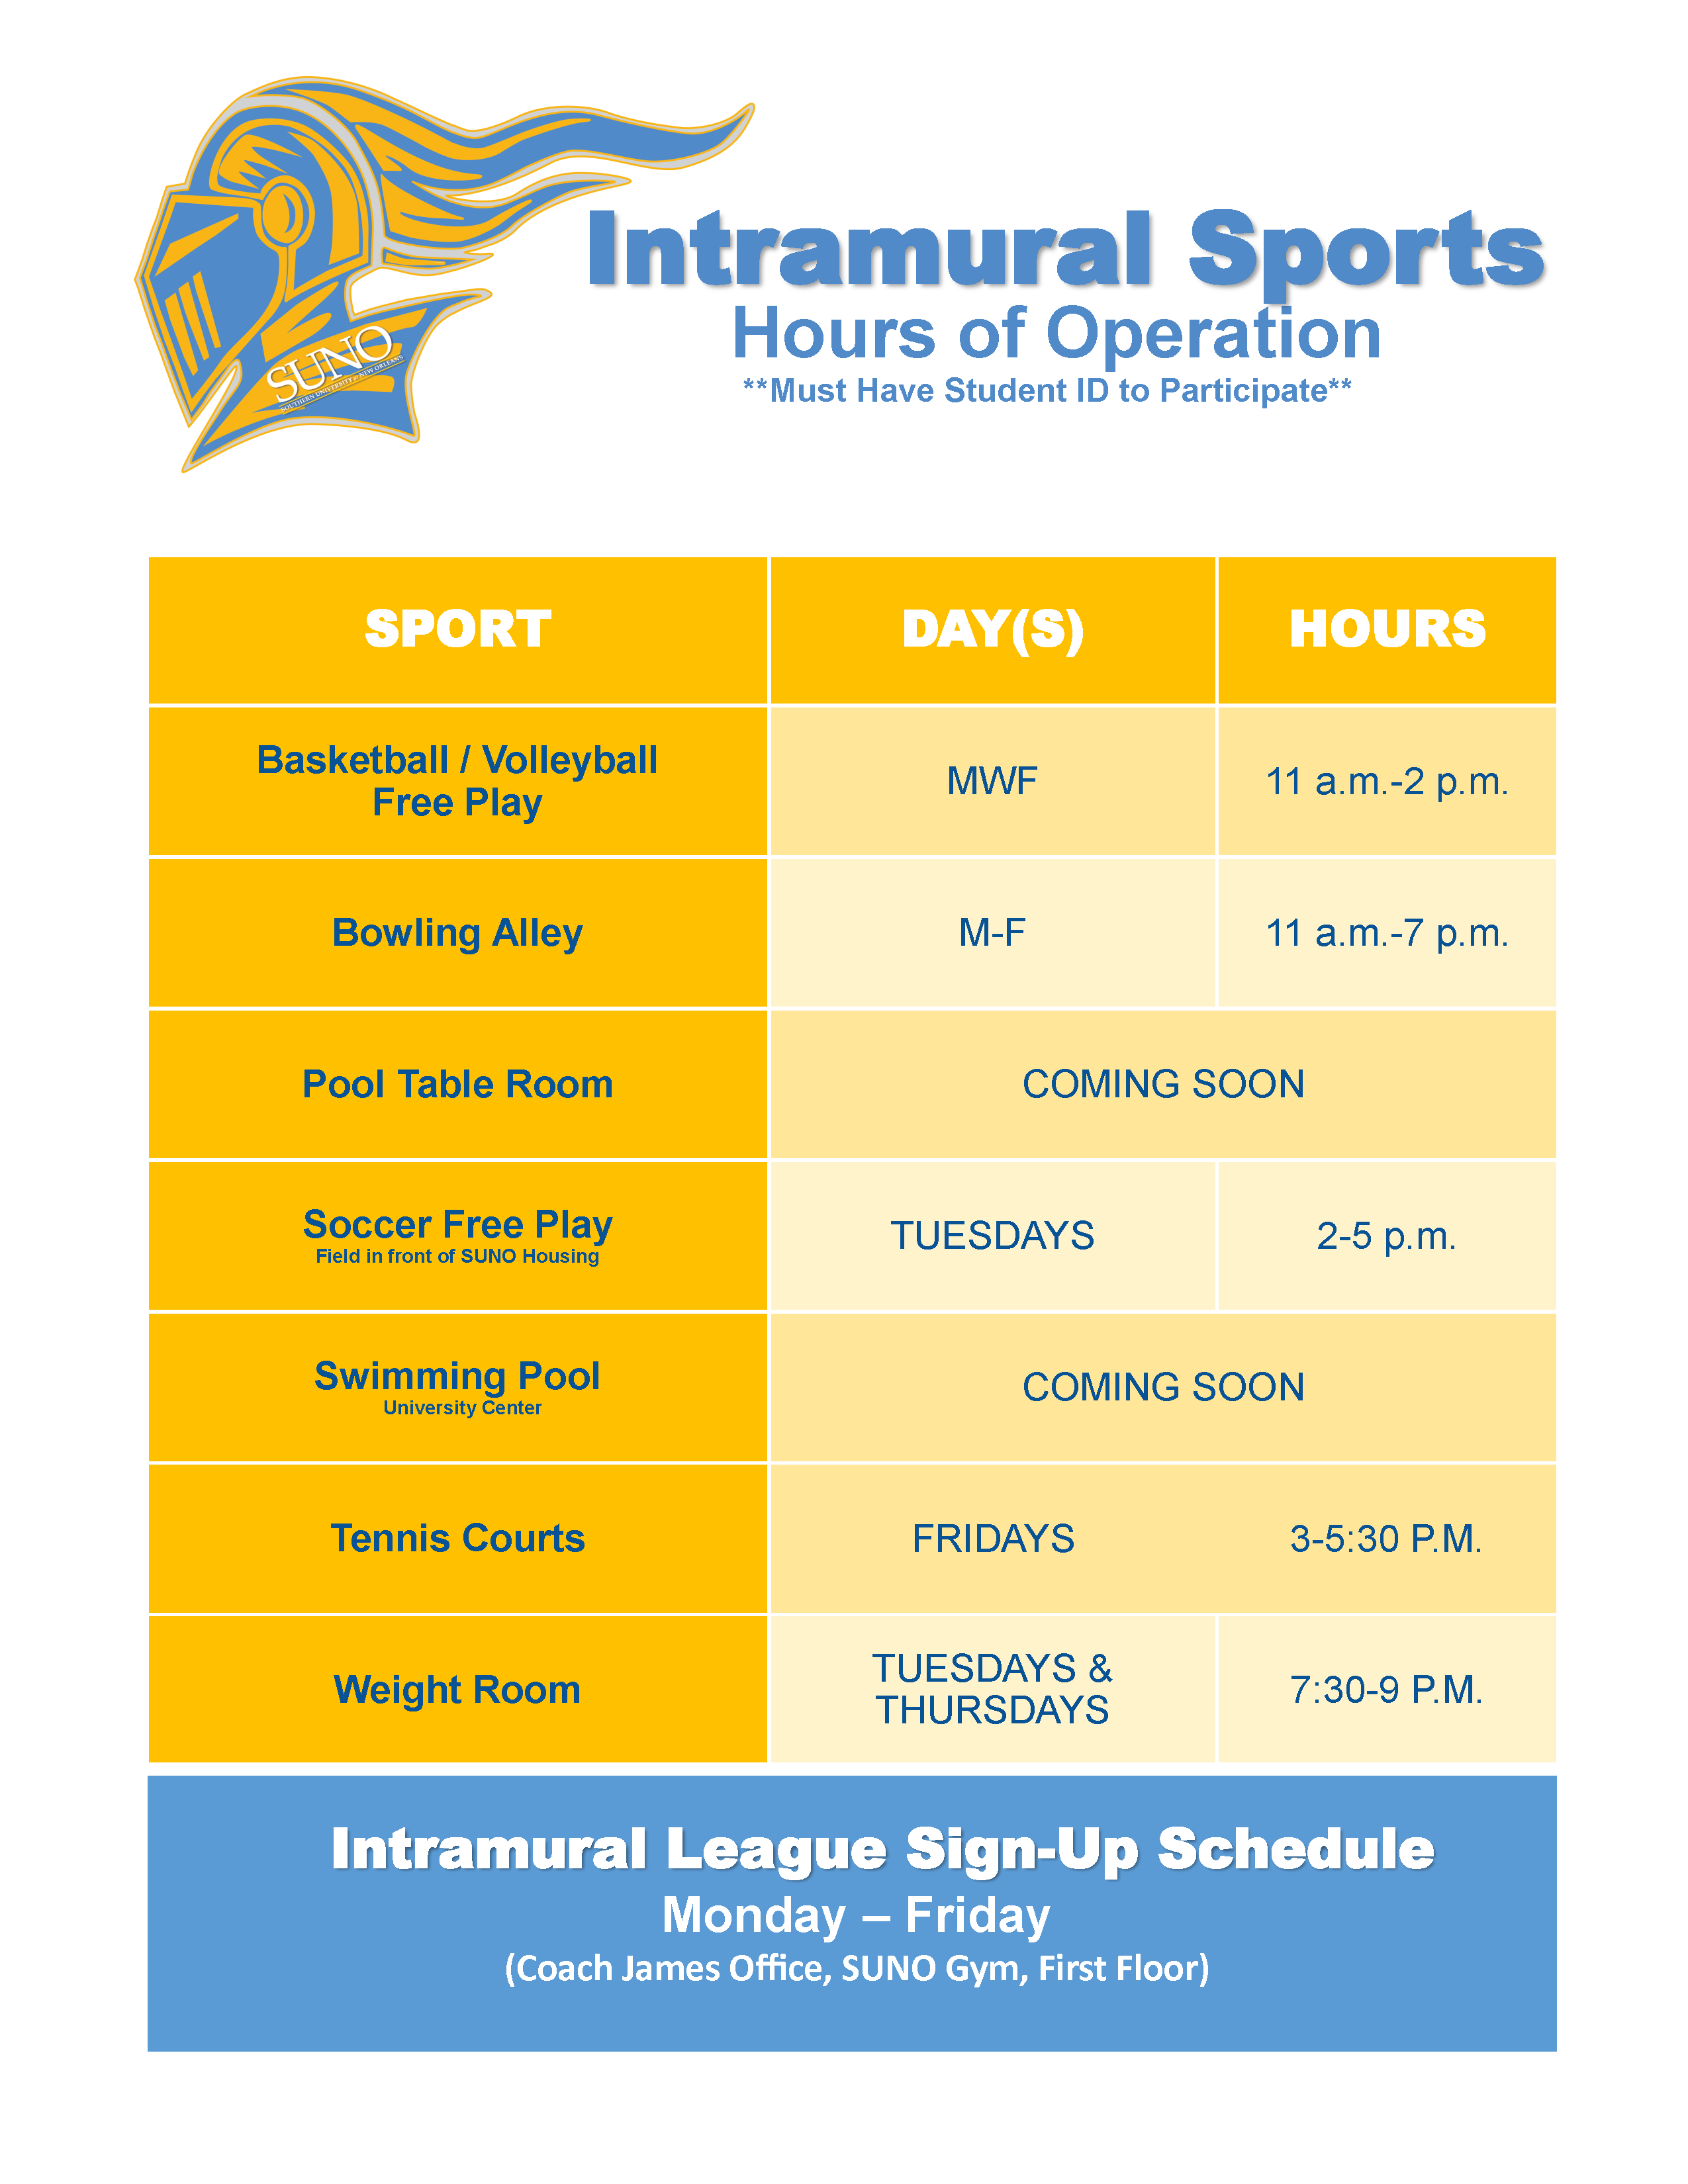 Intramural Hours of Operation